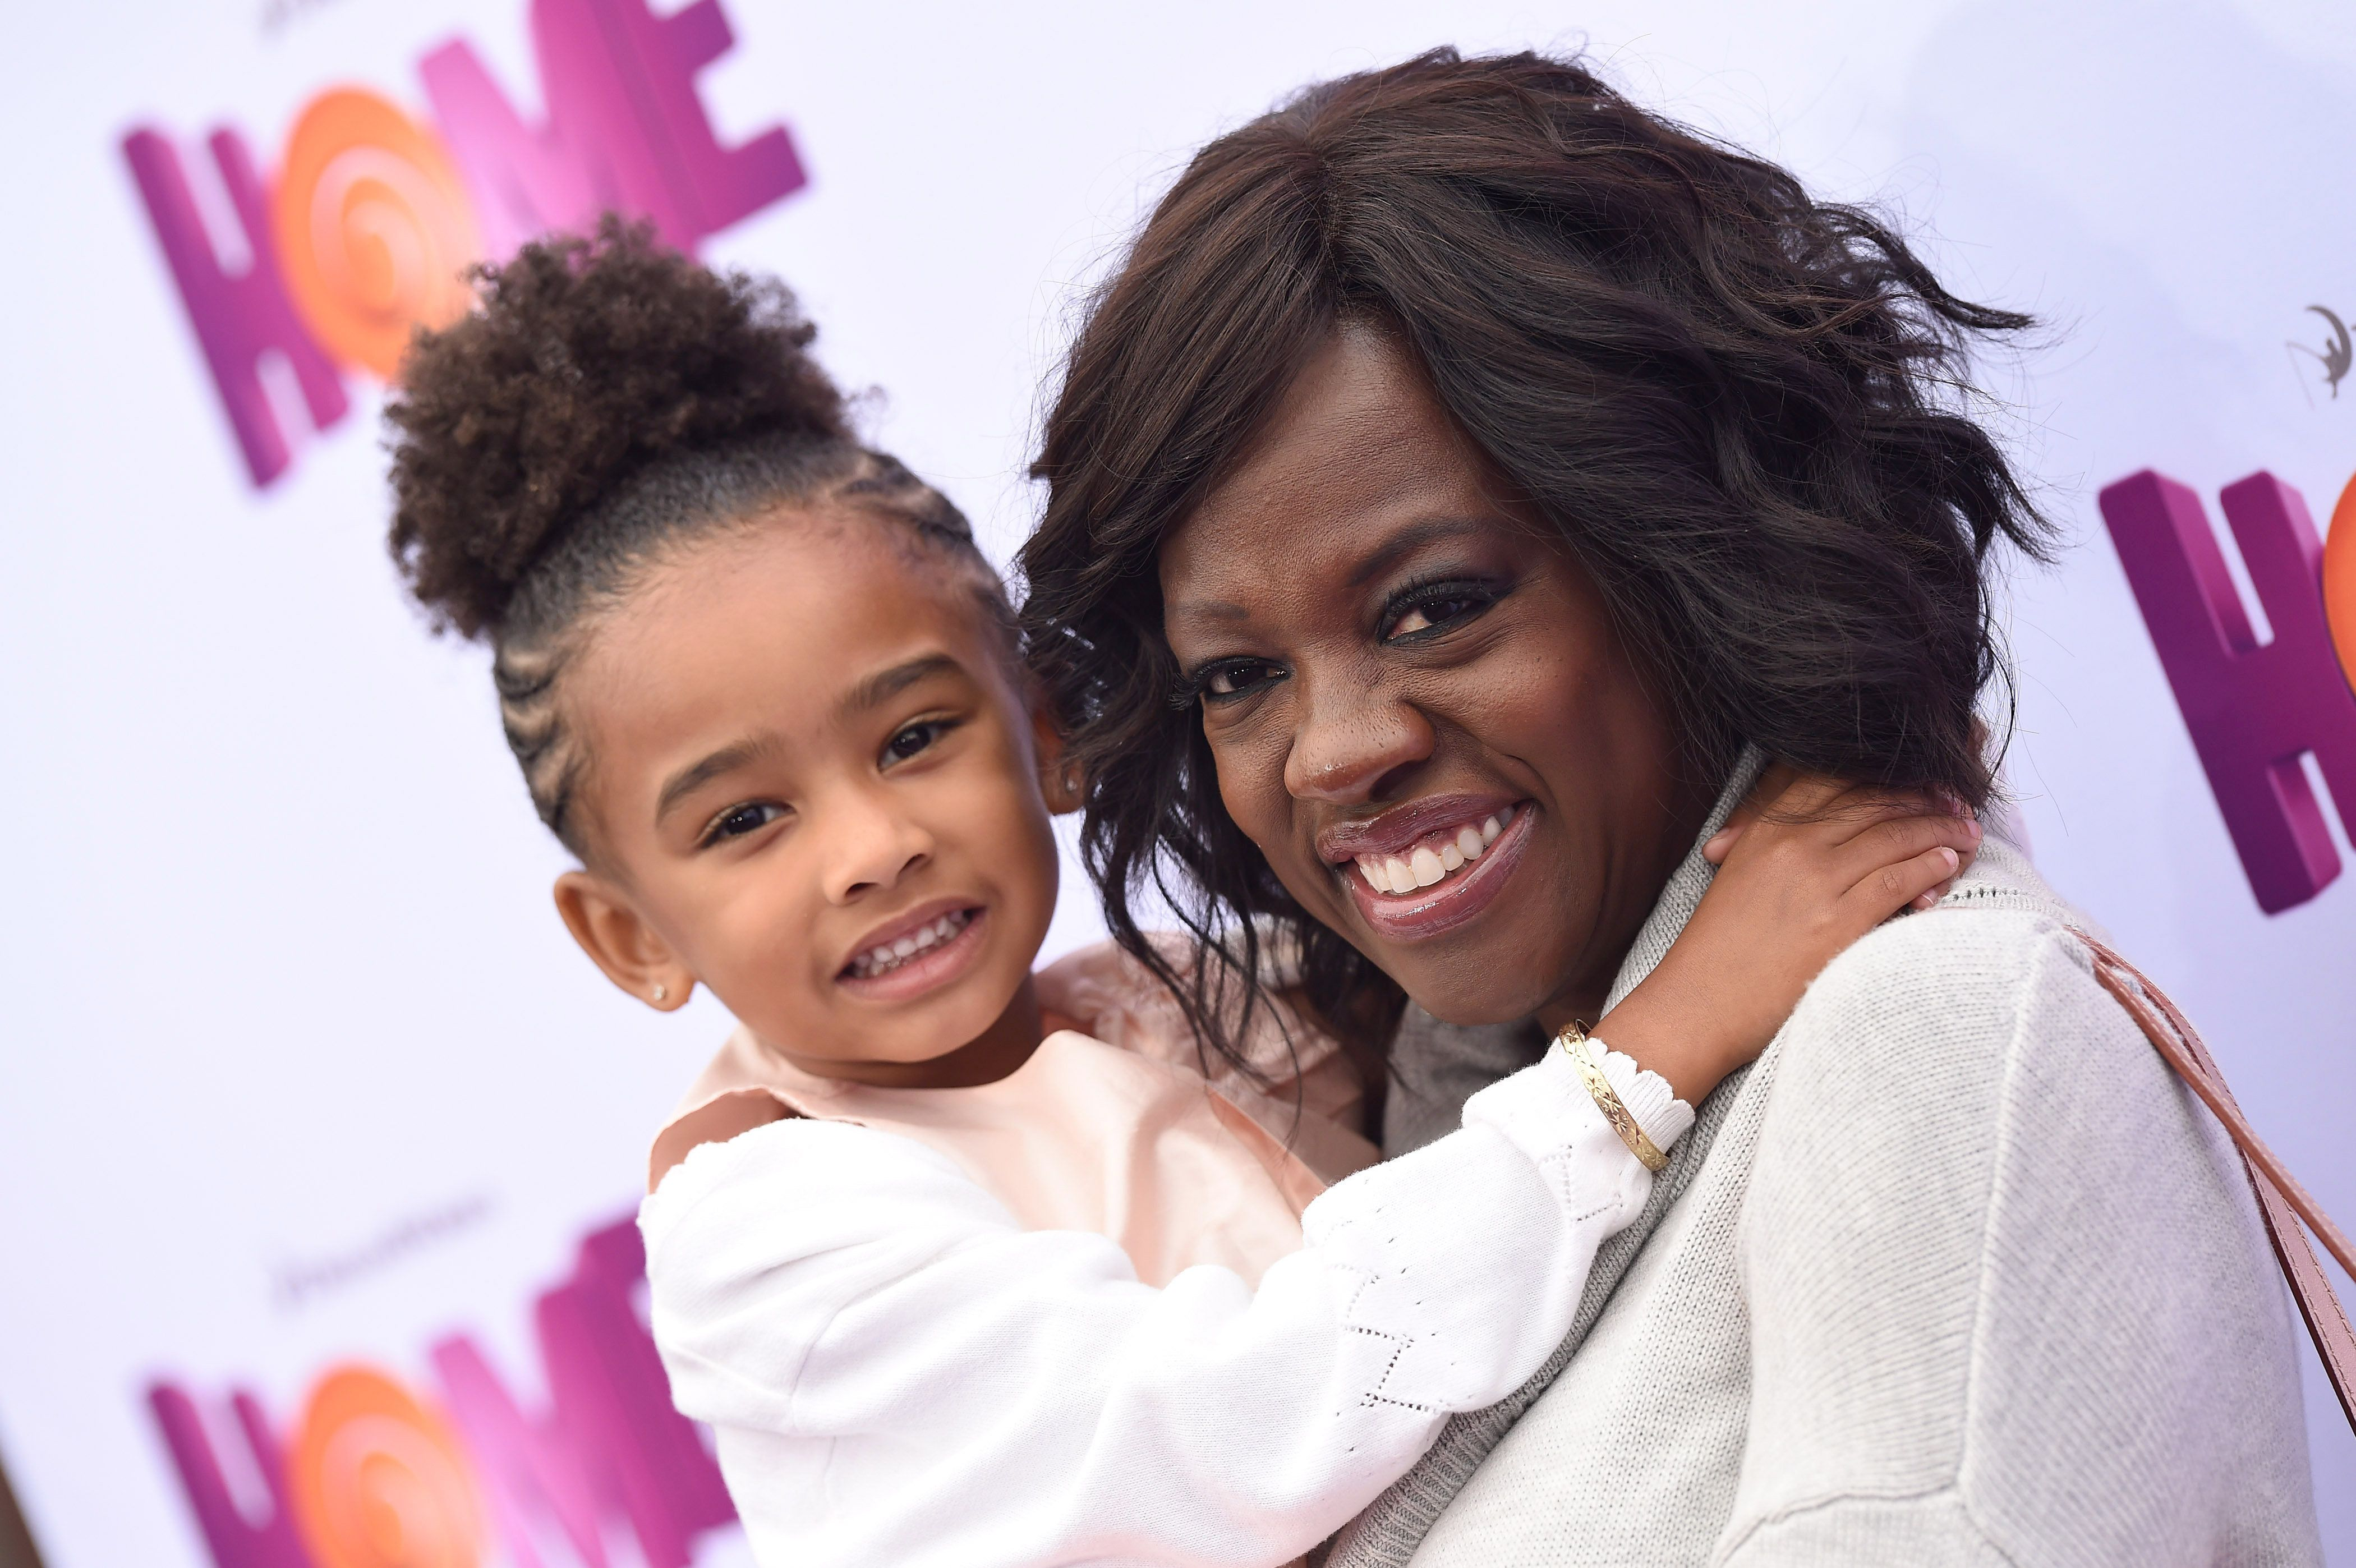 WESTWOOD, CA - MARCH 22:  Actress Viola Davis and daughter Genesis Tennon arrive at the Los Angeles premiere of 'HOME' at Regency Village Theatre on March 22, 2015 in Westwood, California.  (Photo by Axelle/Bauer-Griffin/FilmMagic)